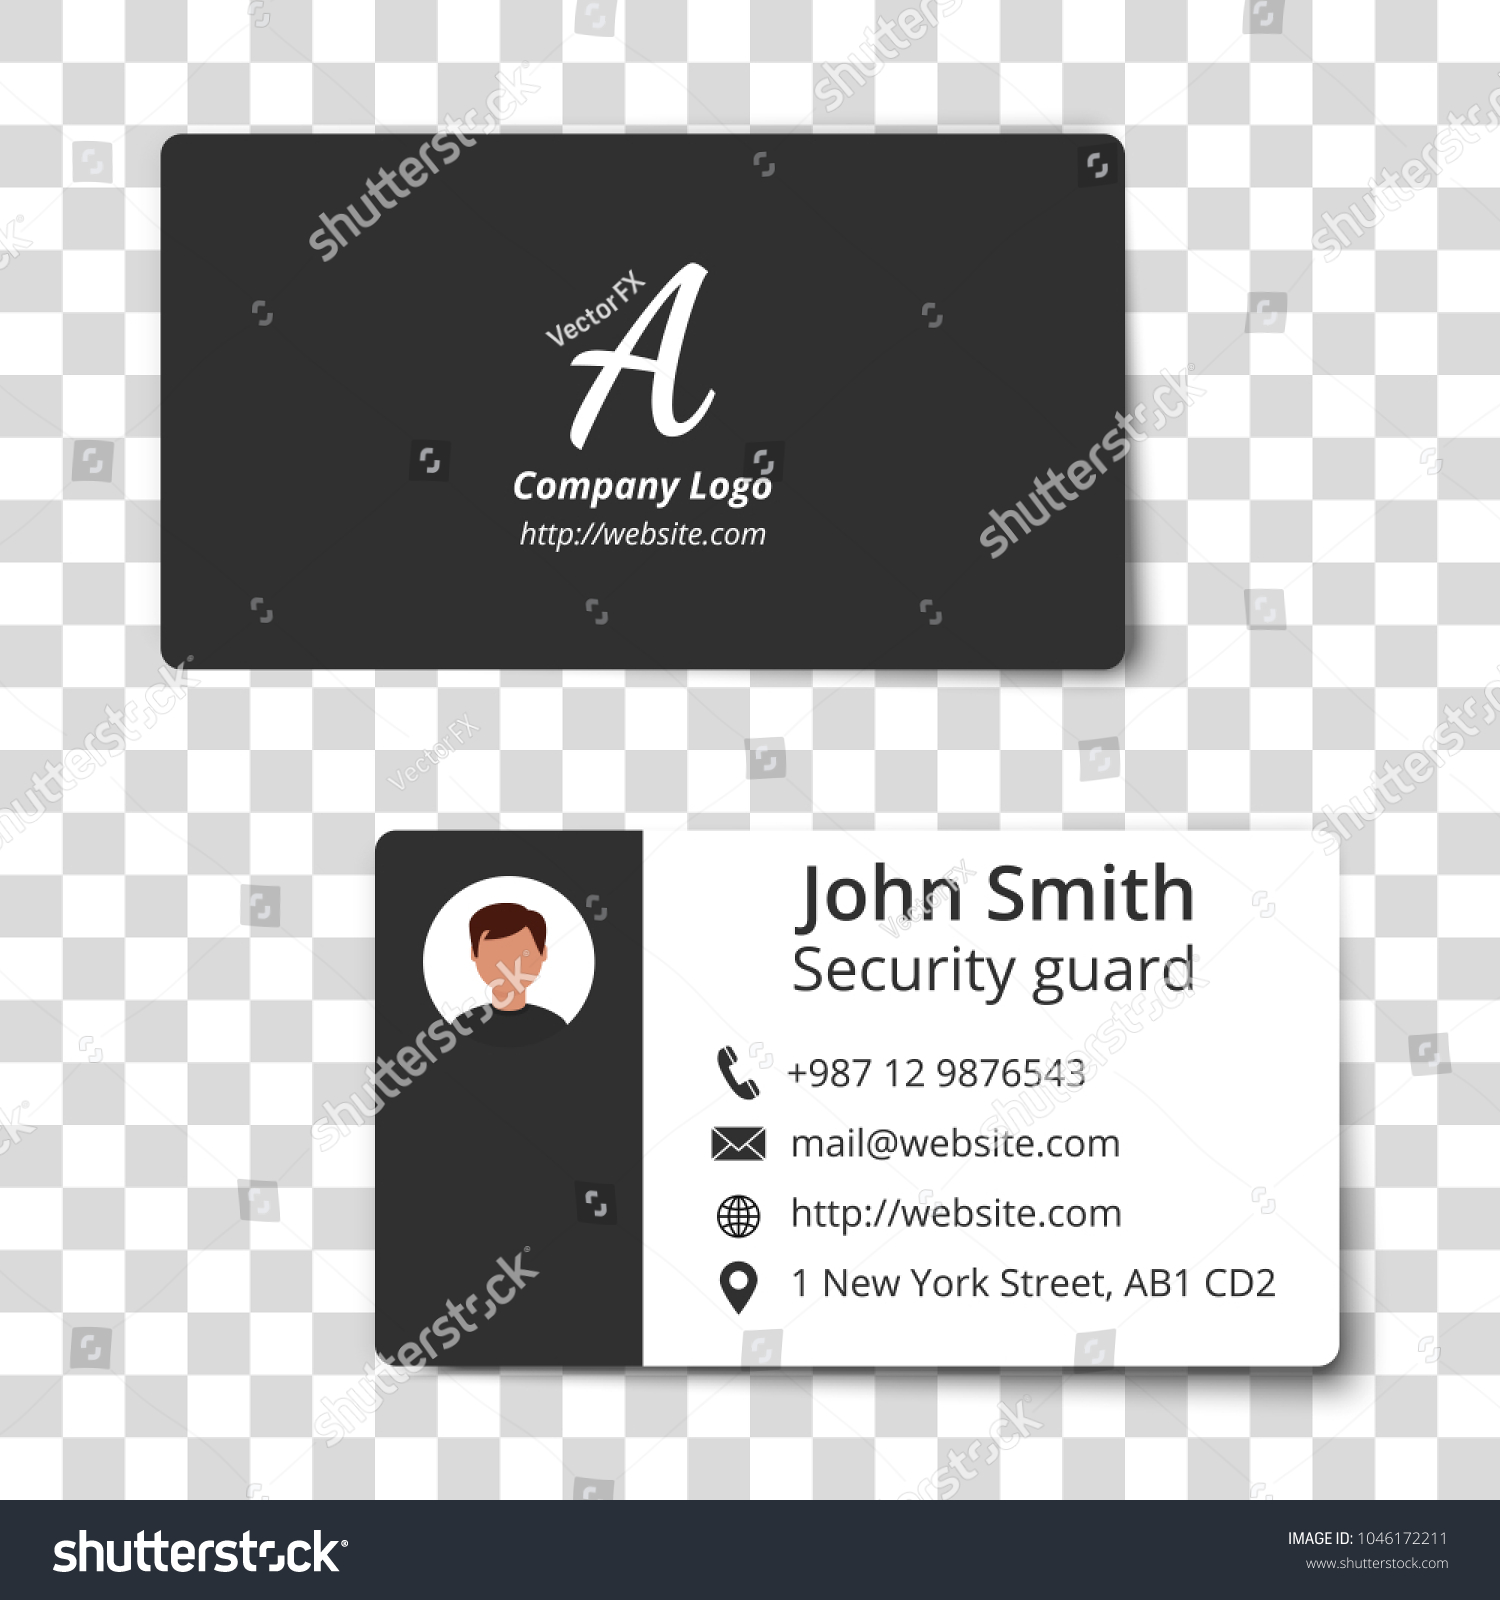 Twosided Business Card Template Vector Illustration Stock Vector HD ...